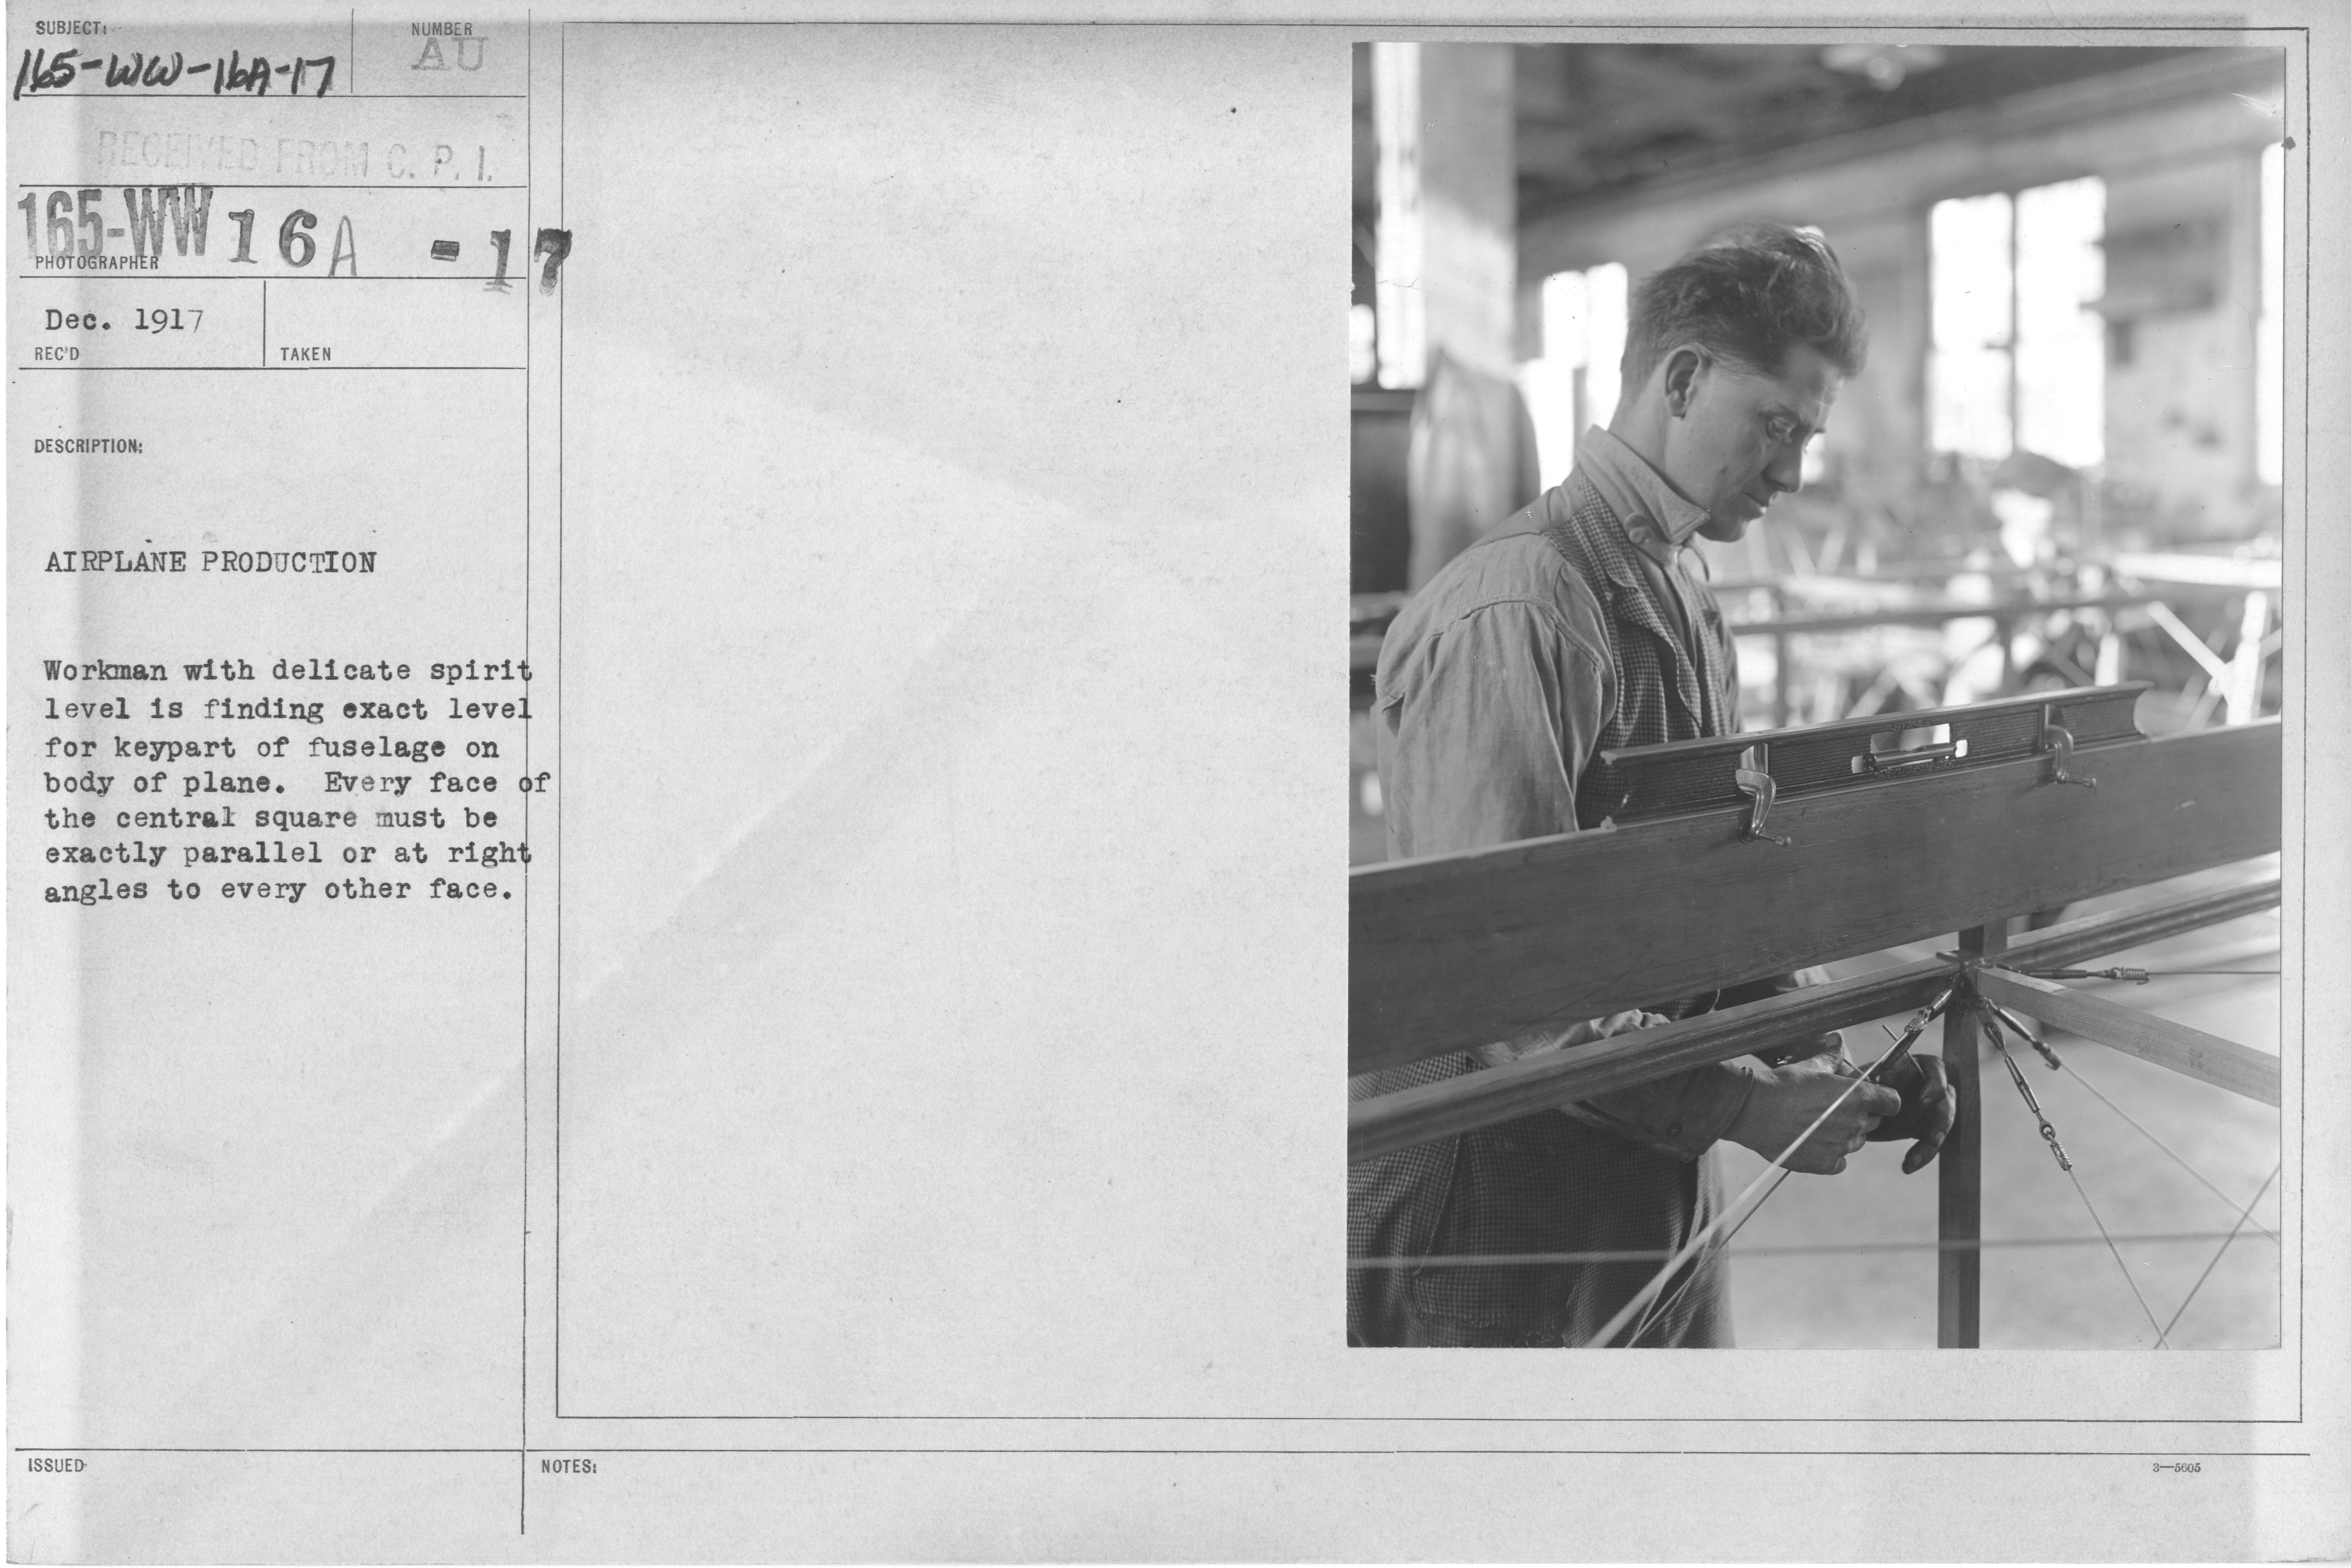 File:Airplanes - Parts - Airplane Production. Workman with ... for Spirit Level Parts  579cpg